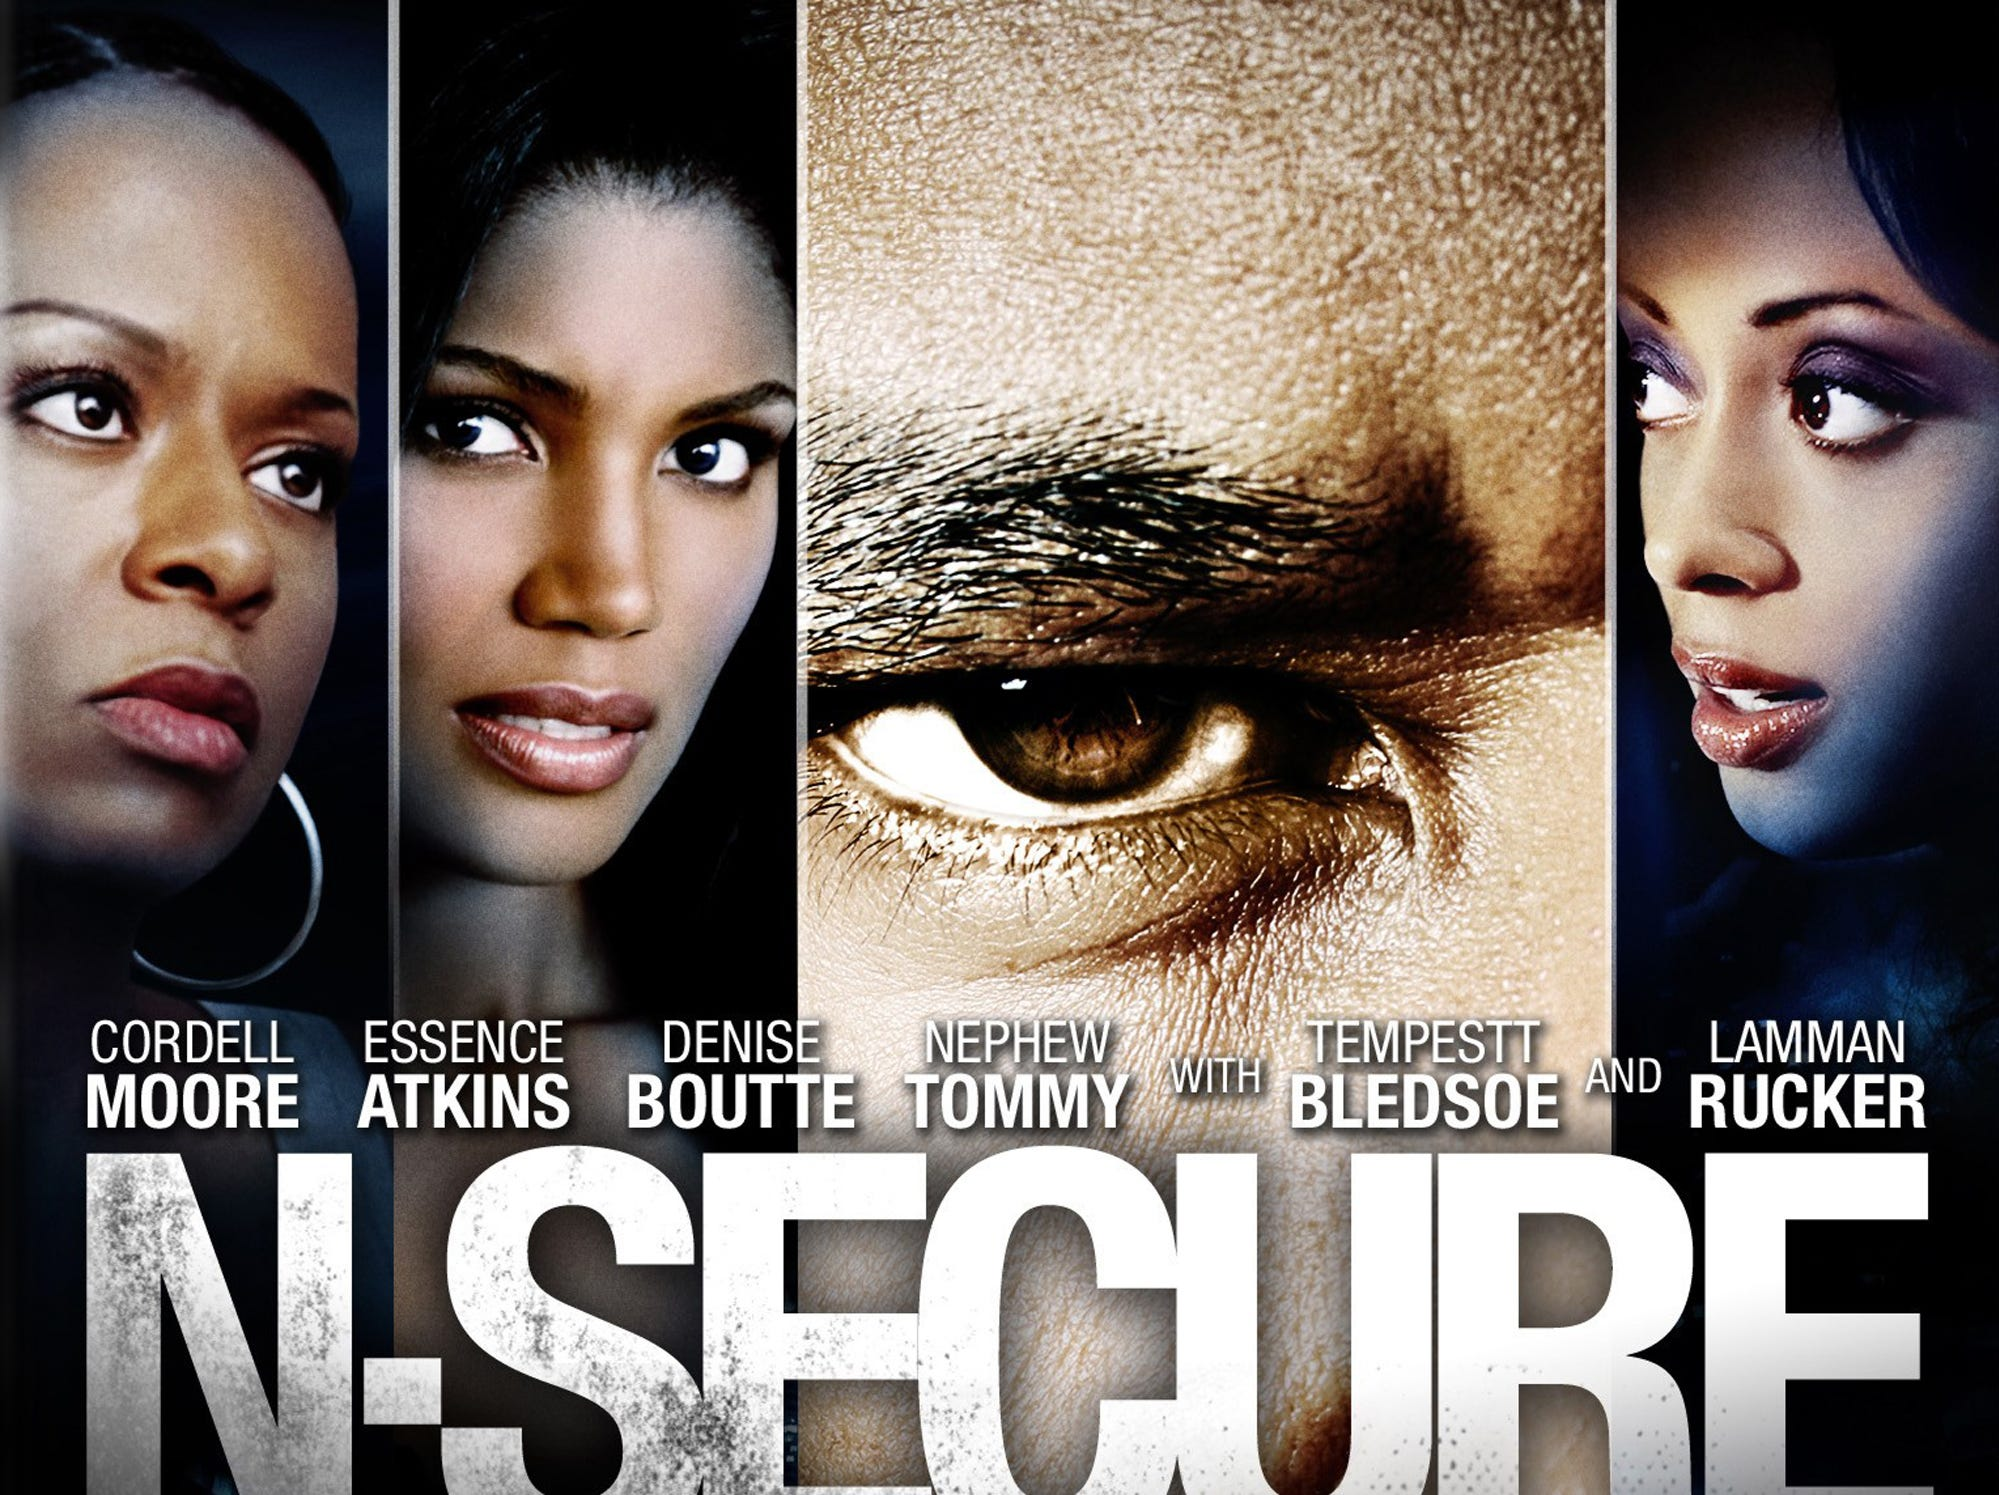 """N-Secure"" (2010) - This movie is described by IMDB as a ""no holds-barred thrilling drama mixed with murder, mayhem, and manipulation among affluent professionals.""  It features Tempestt Bledsoe, Cordell Moore, Essence Atkins and Denise Boutte"